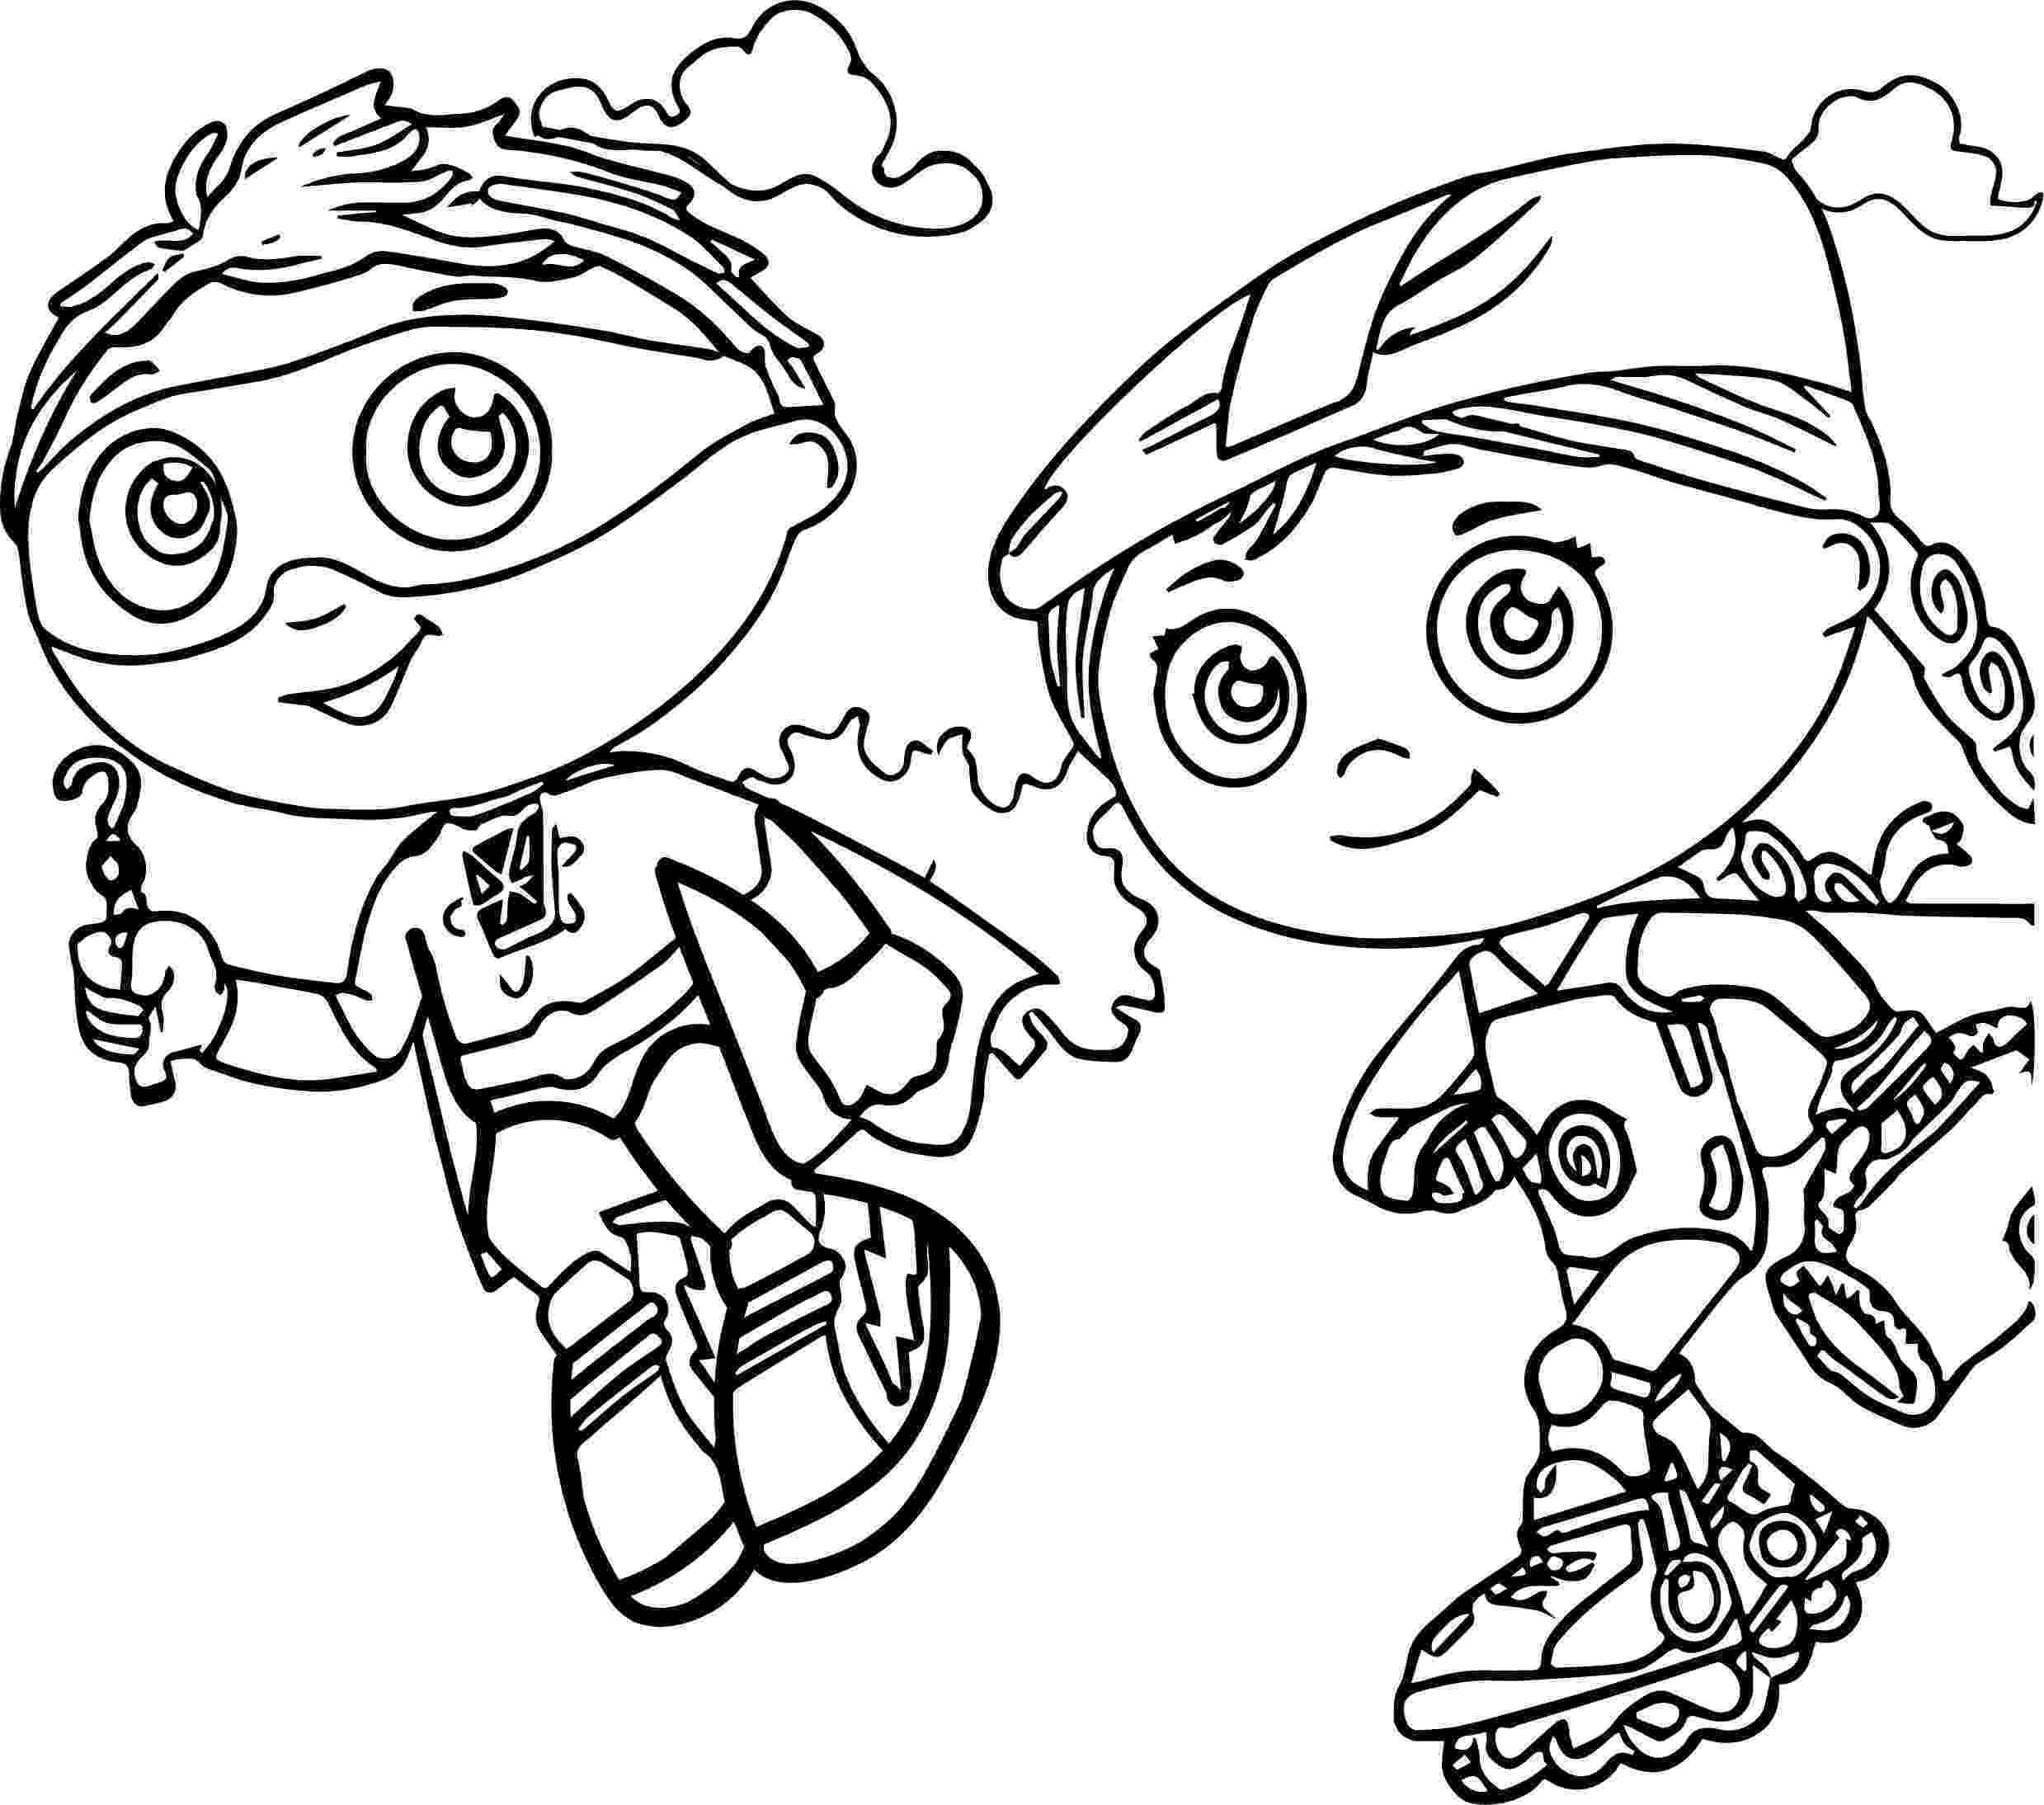 best colouring pages to print best friend coloring pages to download and print for free best to print colouring pages